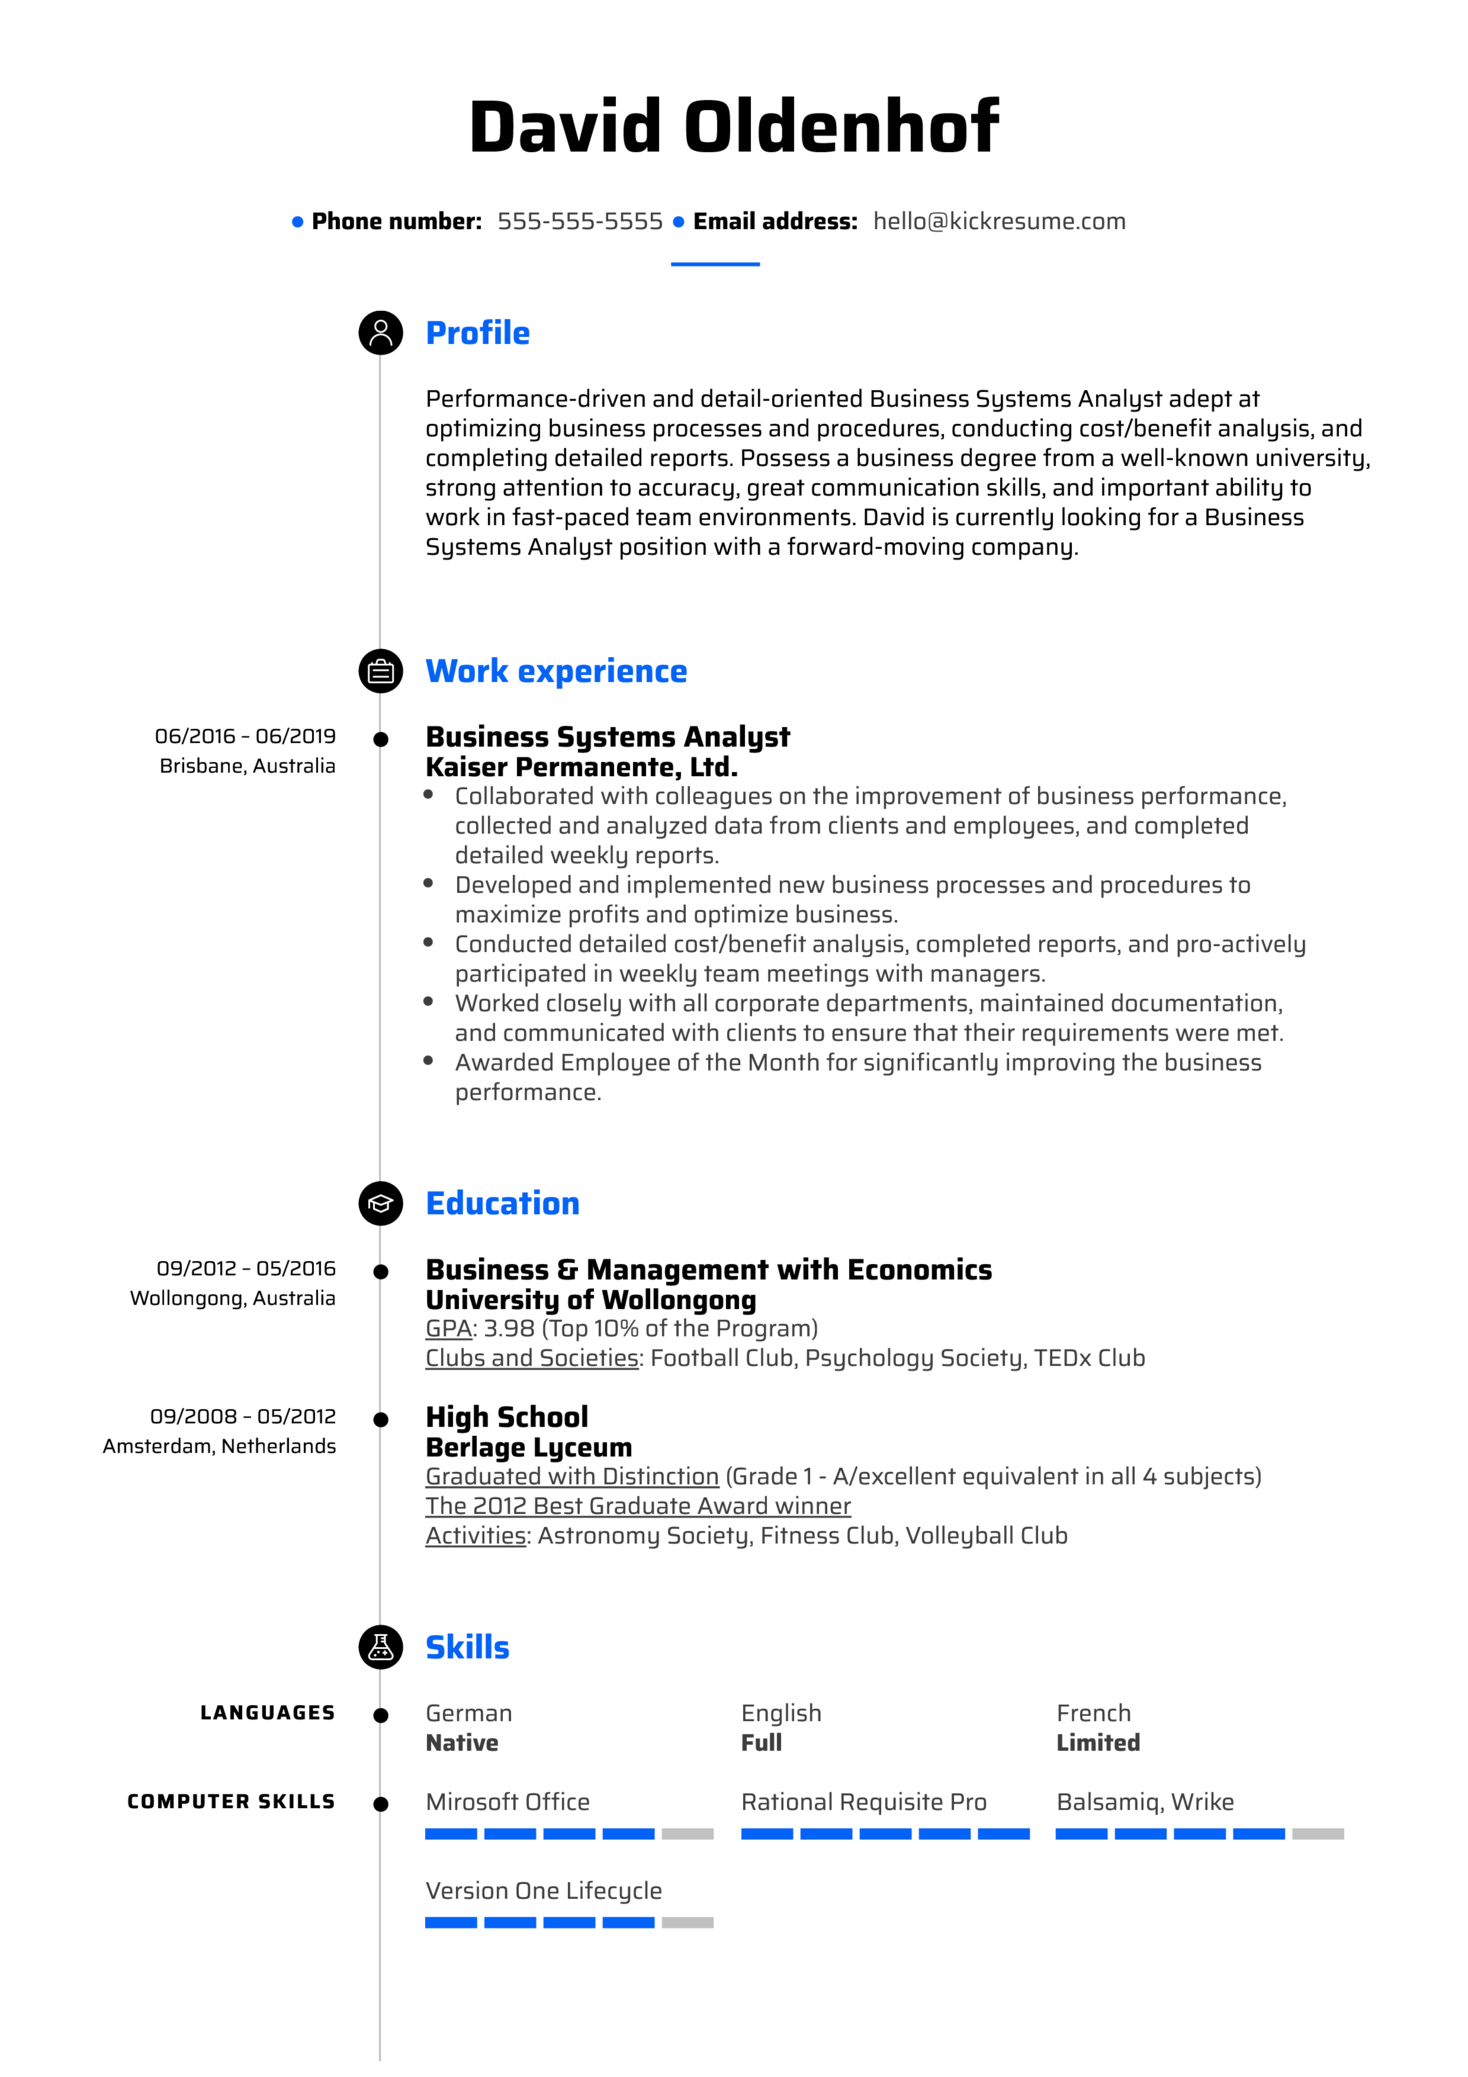 Business Systems Analyst Resume Sample (parte 1)